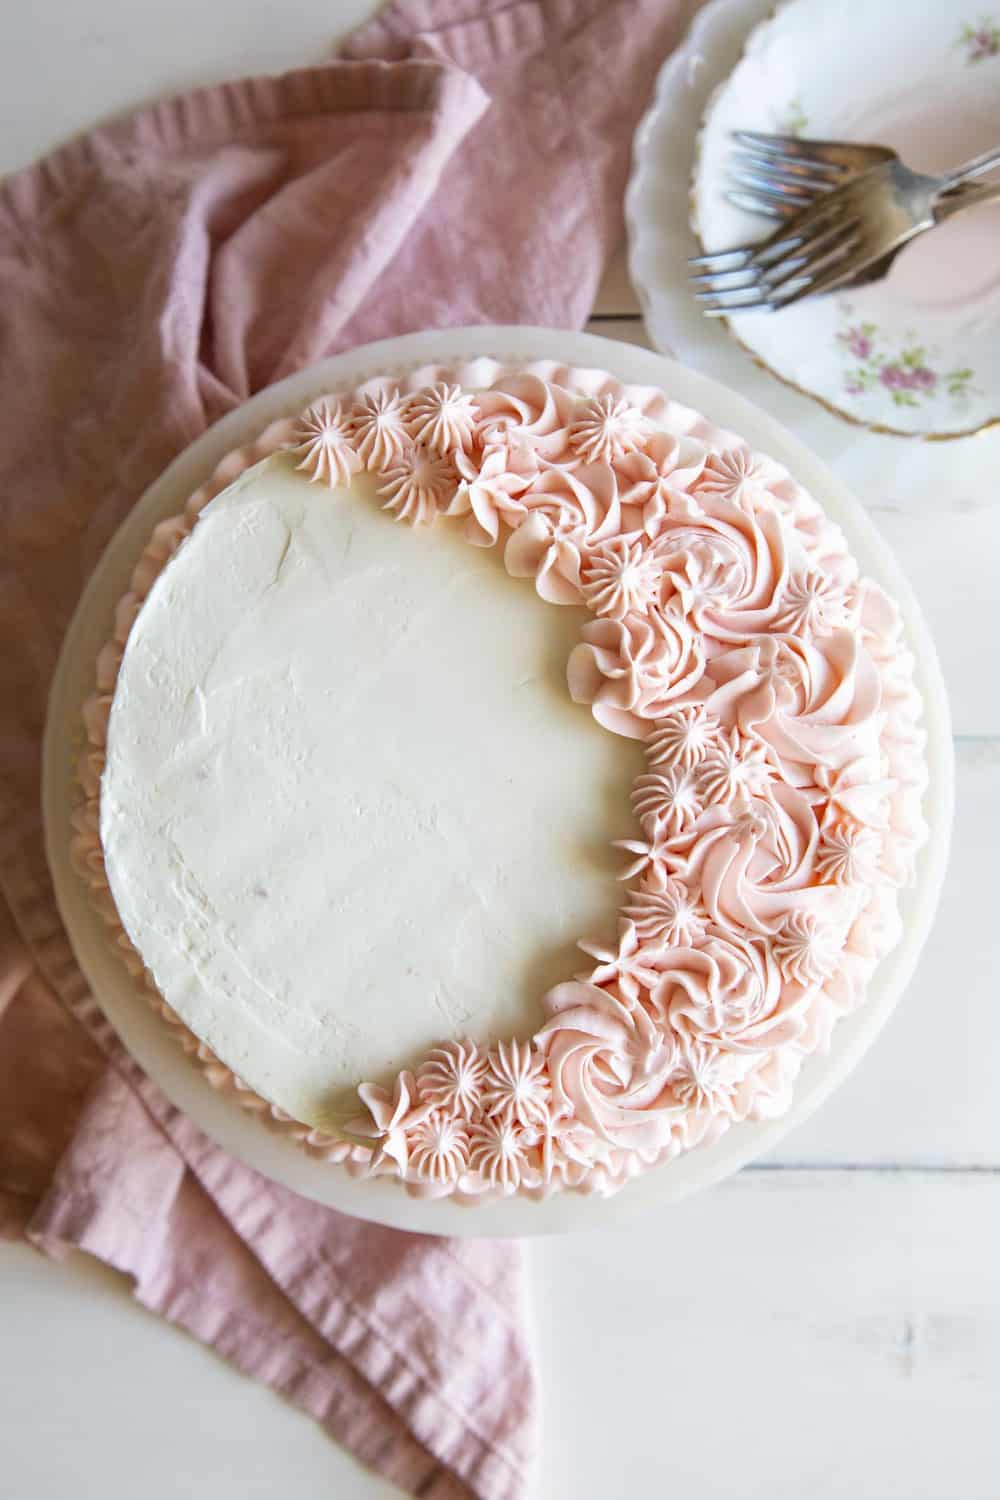 Pink velvet cake with white frosting and pink flowers.